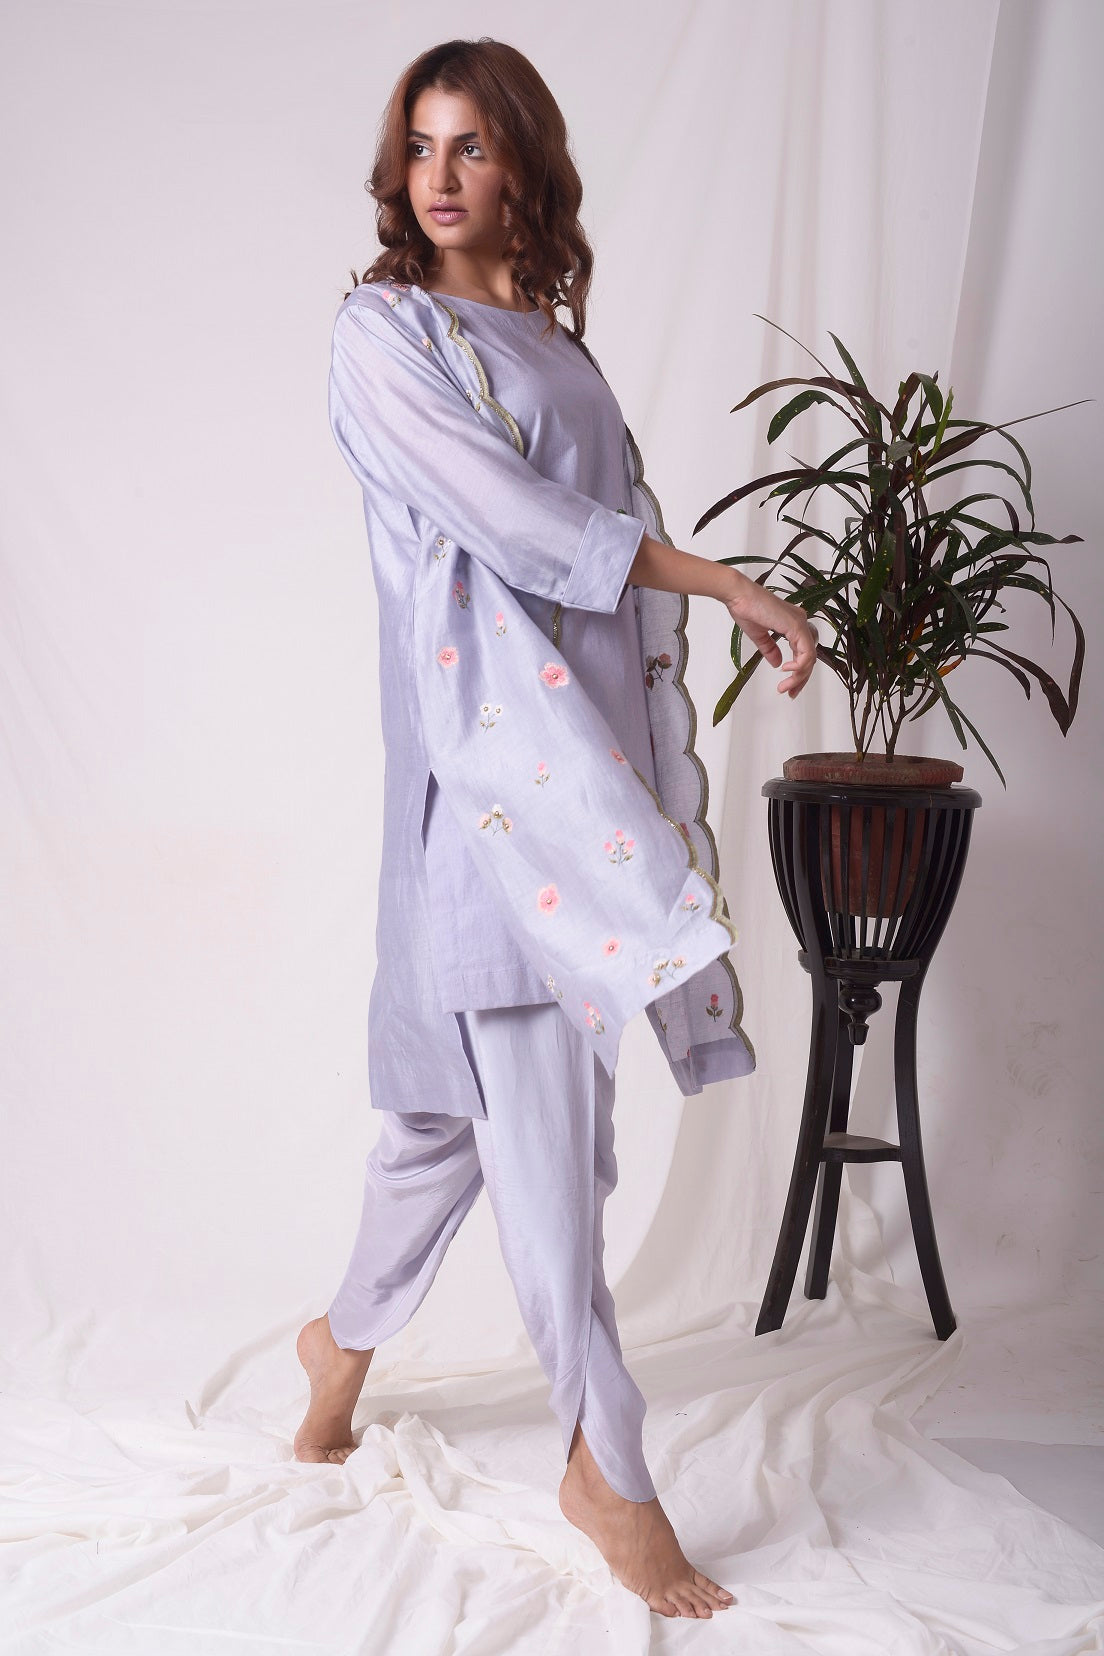 Buy lavender chanderi suit online in USA. Suit has simple red and green work. Kurta has 3/4 length sleeves and purple dhoti.Kurta has jacket like shrug. Simple look makes it elegant. Be the talk of parties and weddings with exquisite designer gowns from Pure Elegance Indian clothing store in USA. Shop online now.-full view-3